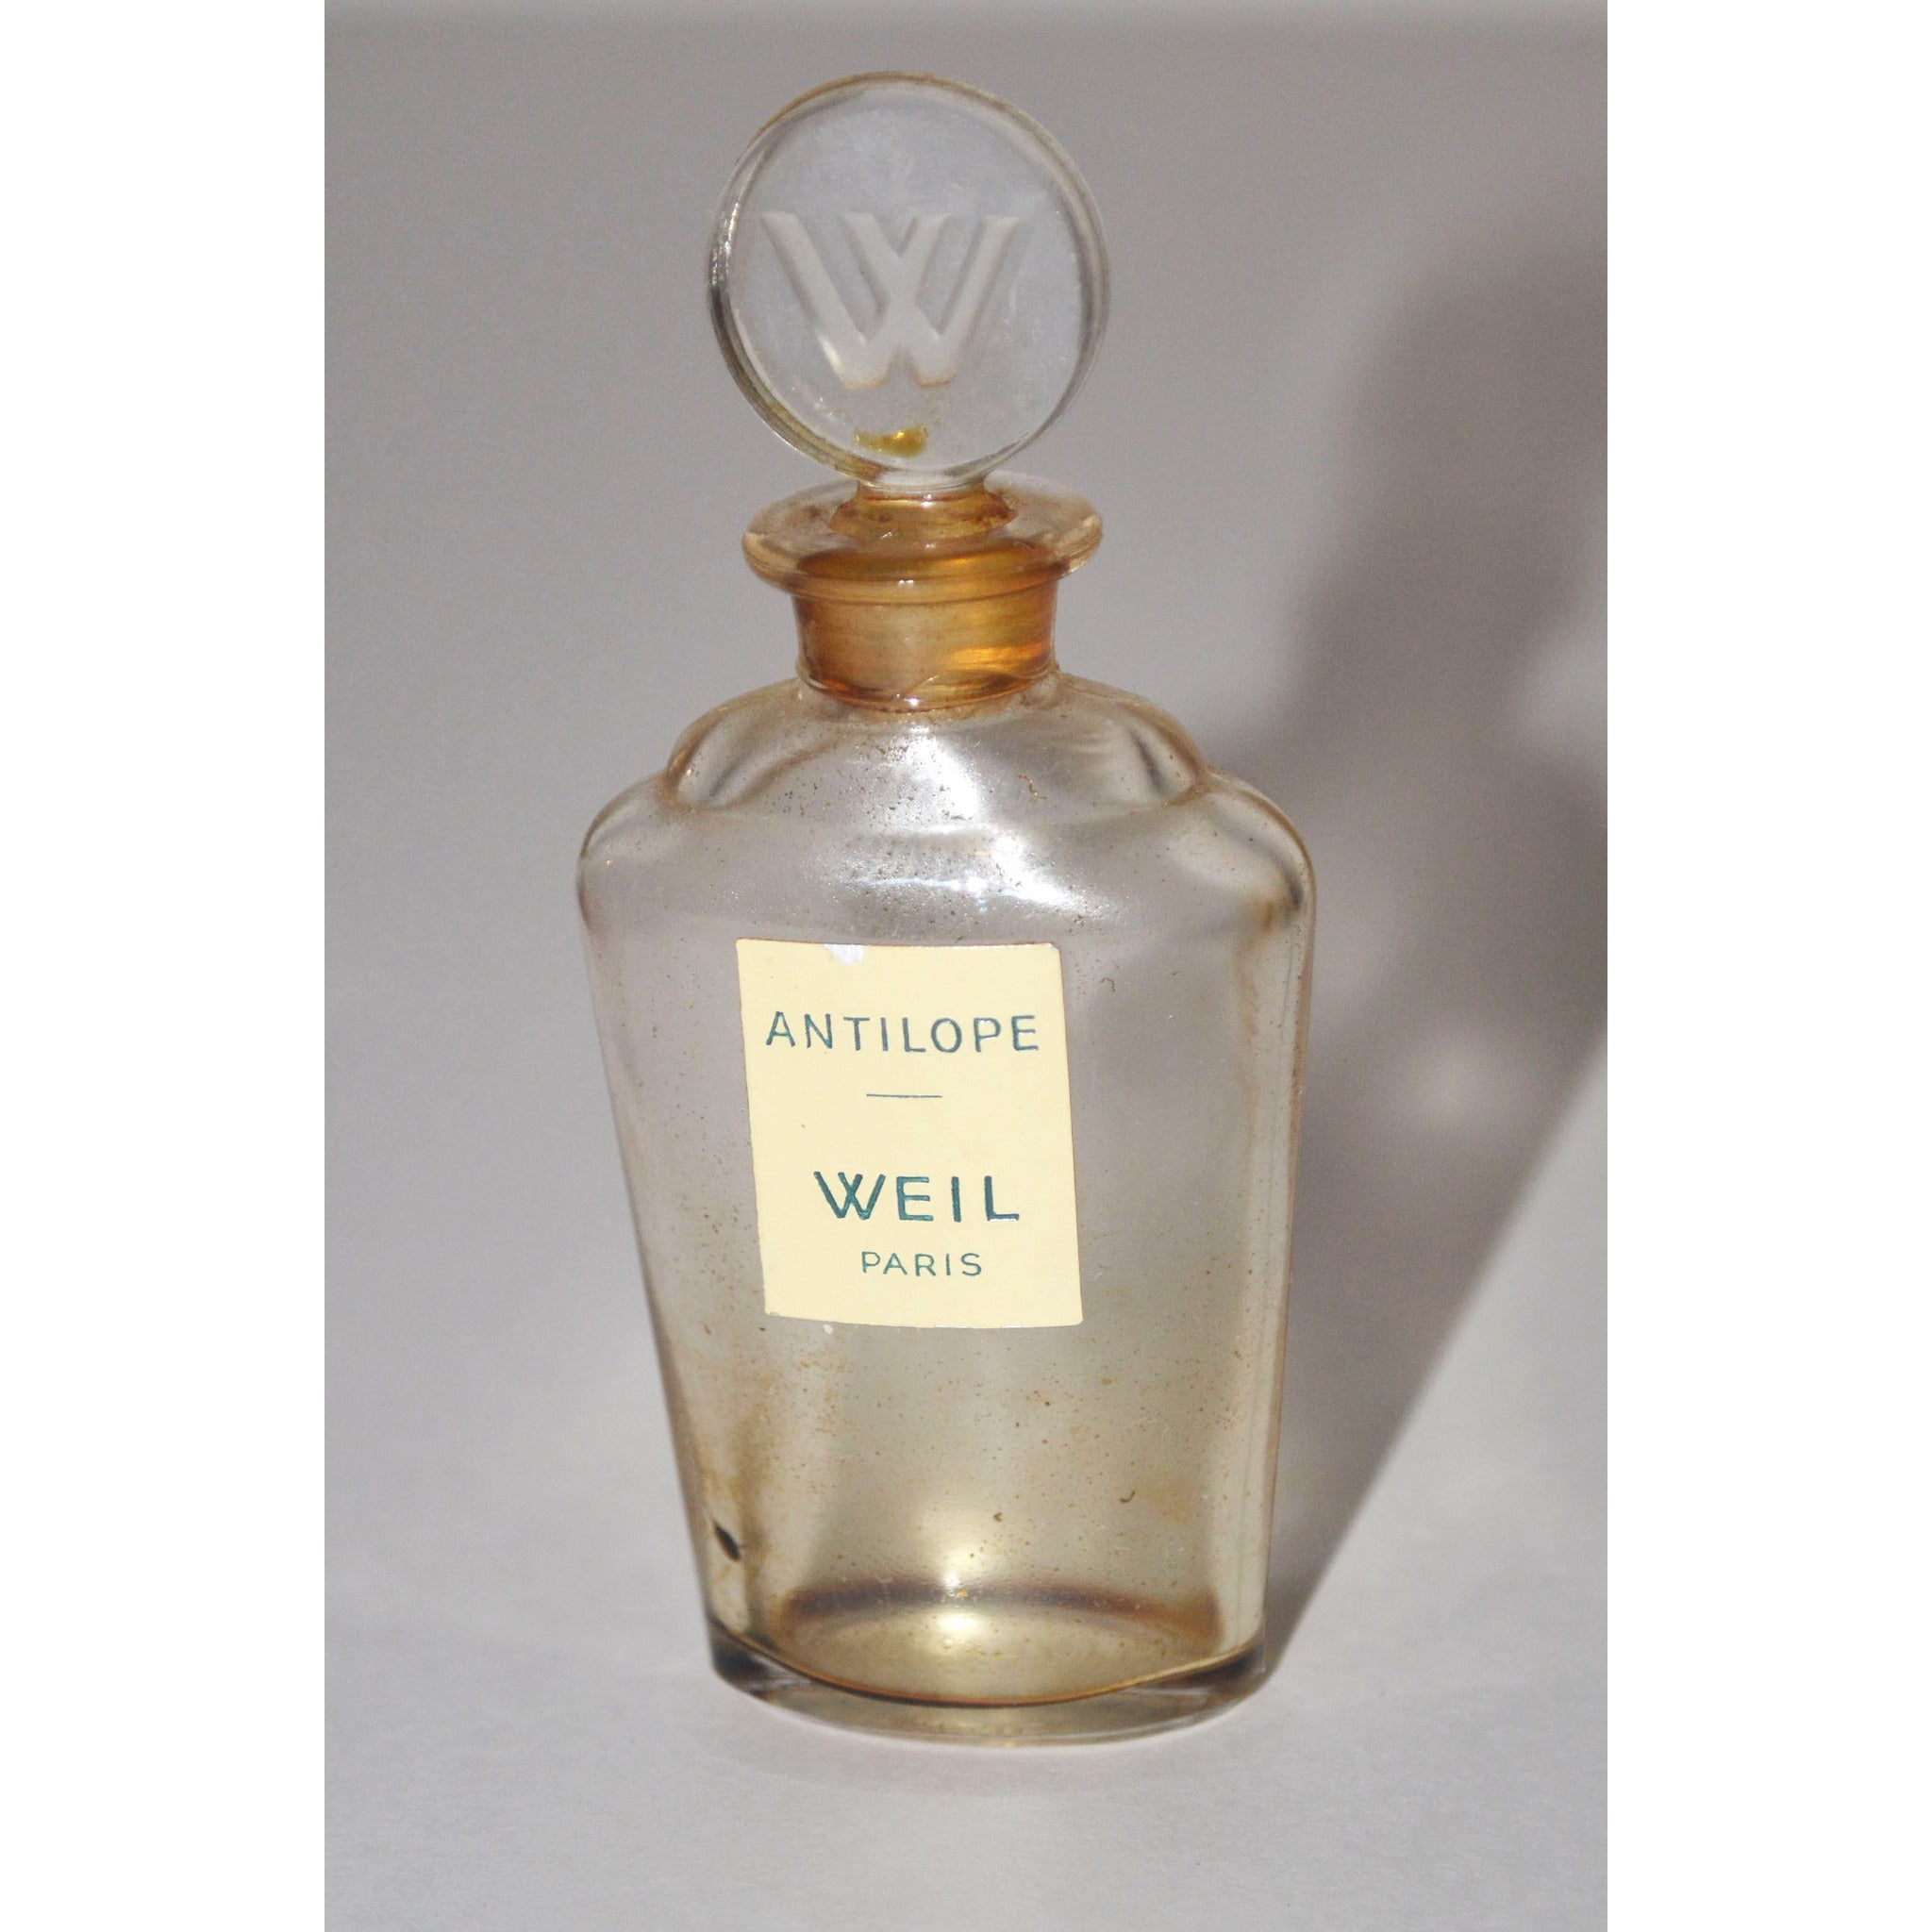 Vintage Antilope Perfume Bottle By Weil